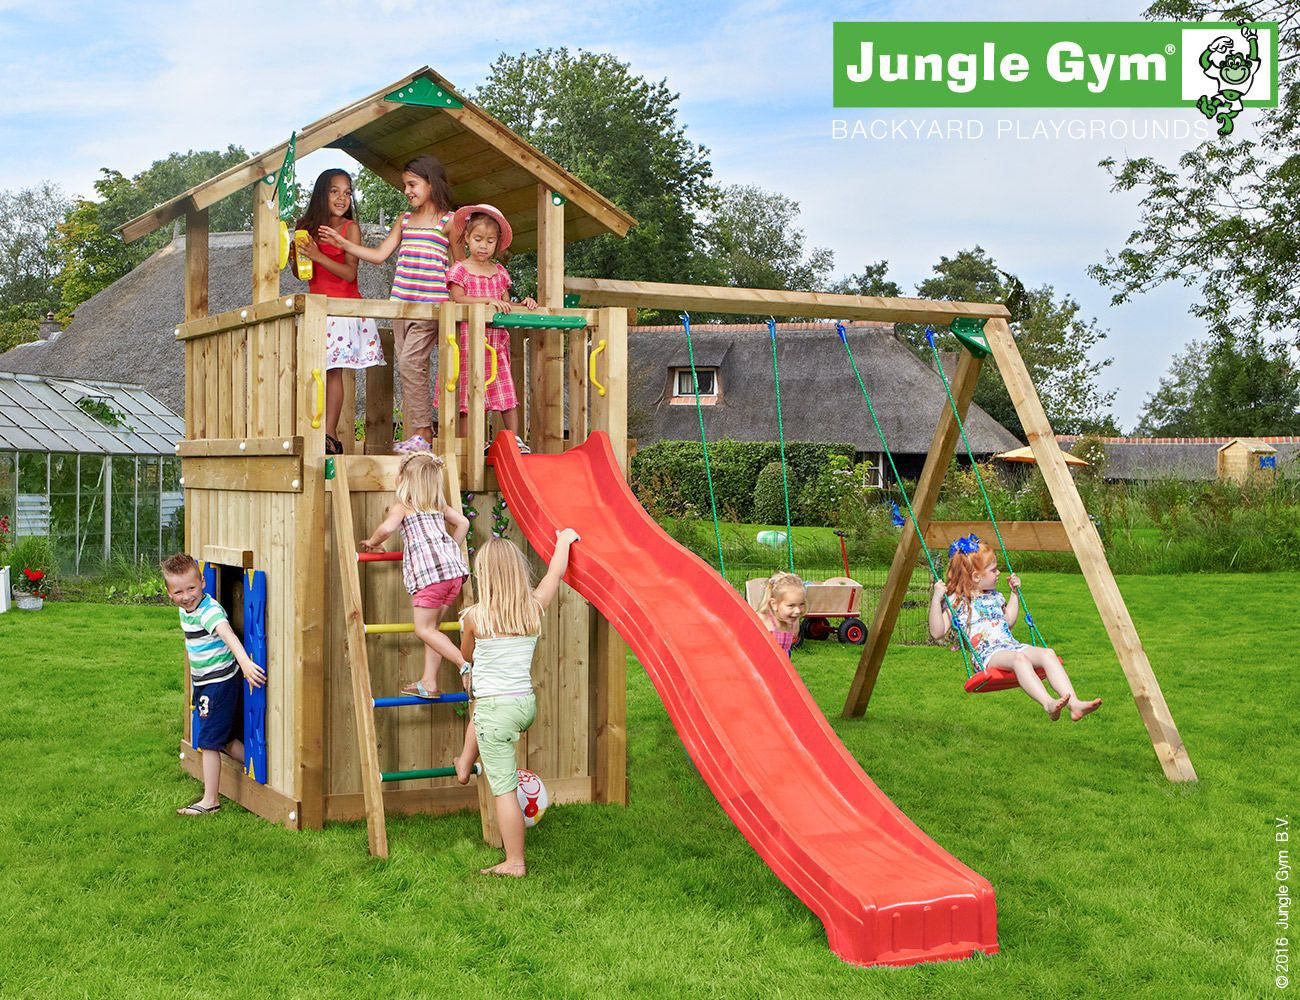 Jungle Gym Chalet Climbing Frame With Swing Arm Slide Swing Seats